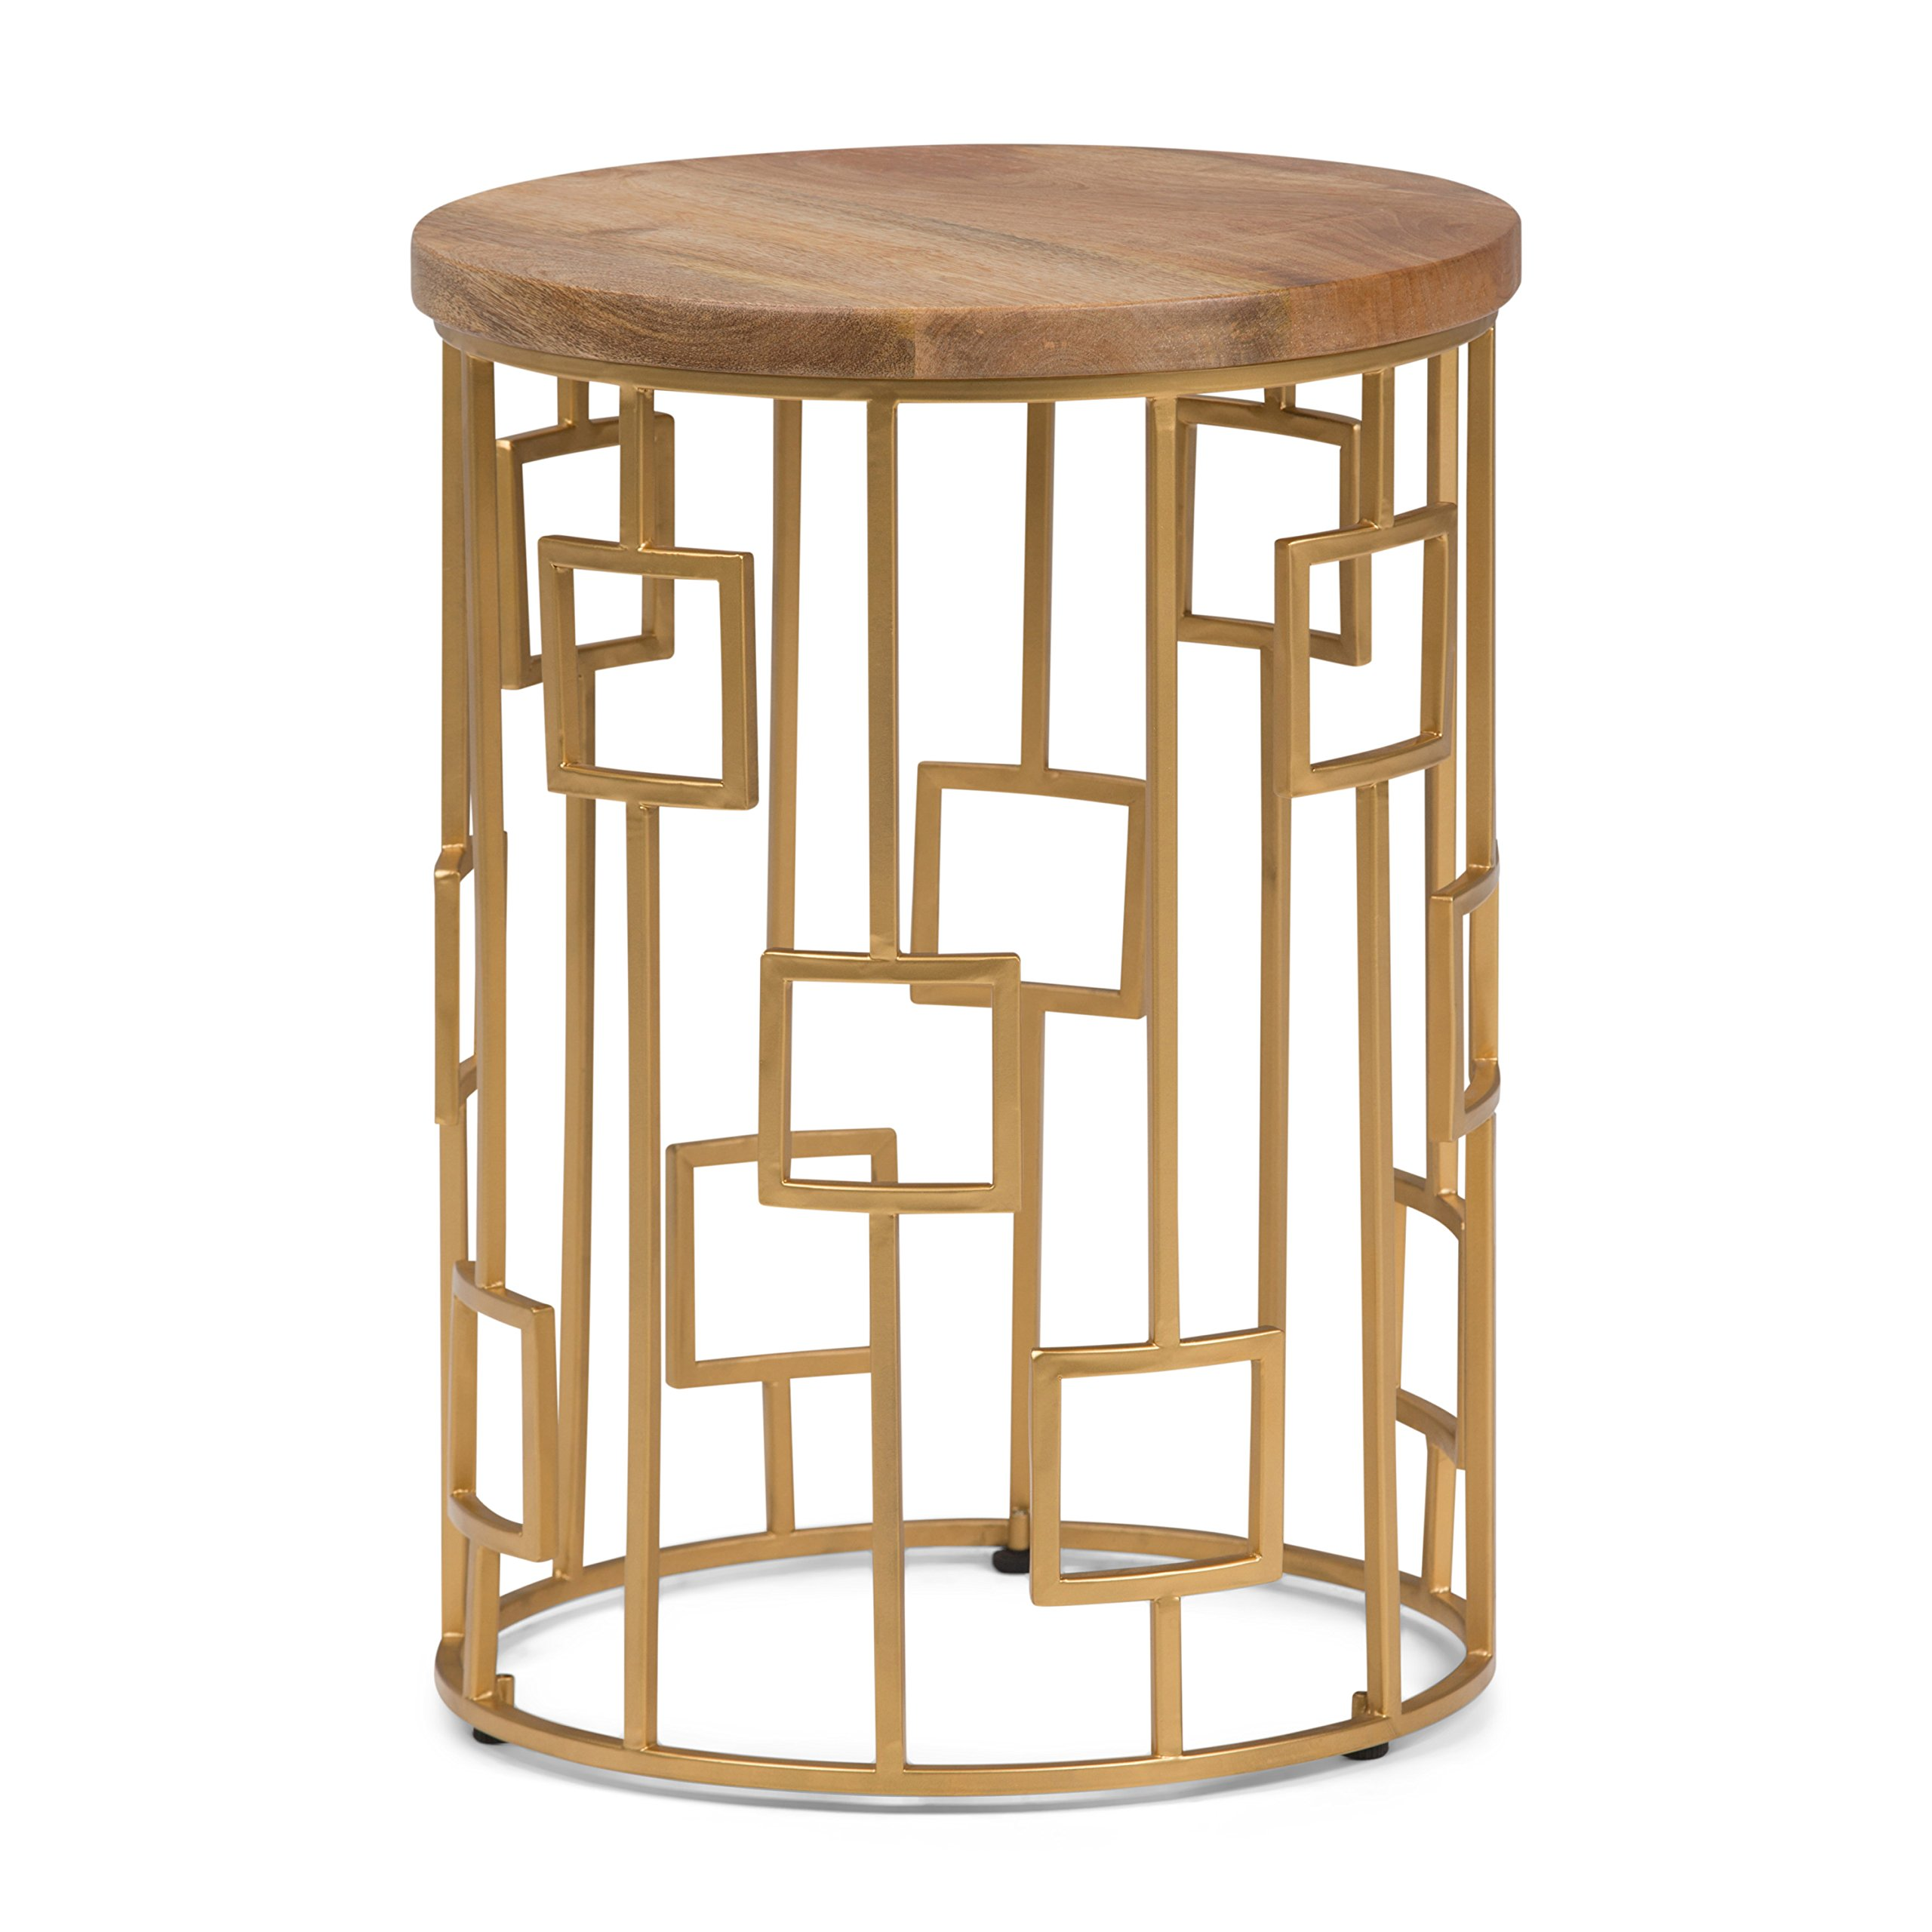 Simpli Home Rhys Metal/Wood Accent Table, Natural and Gold